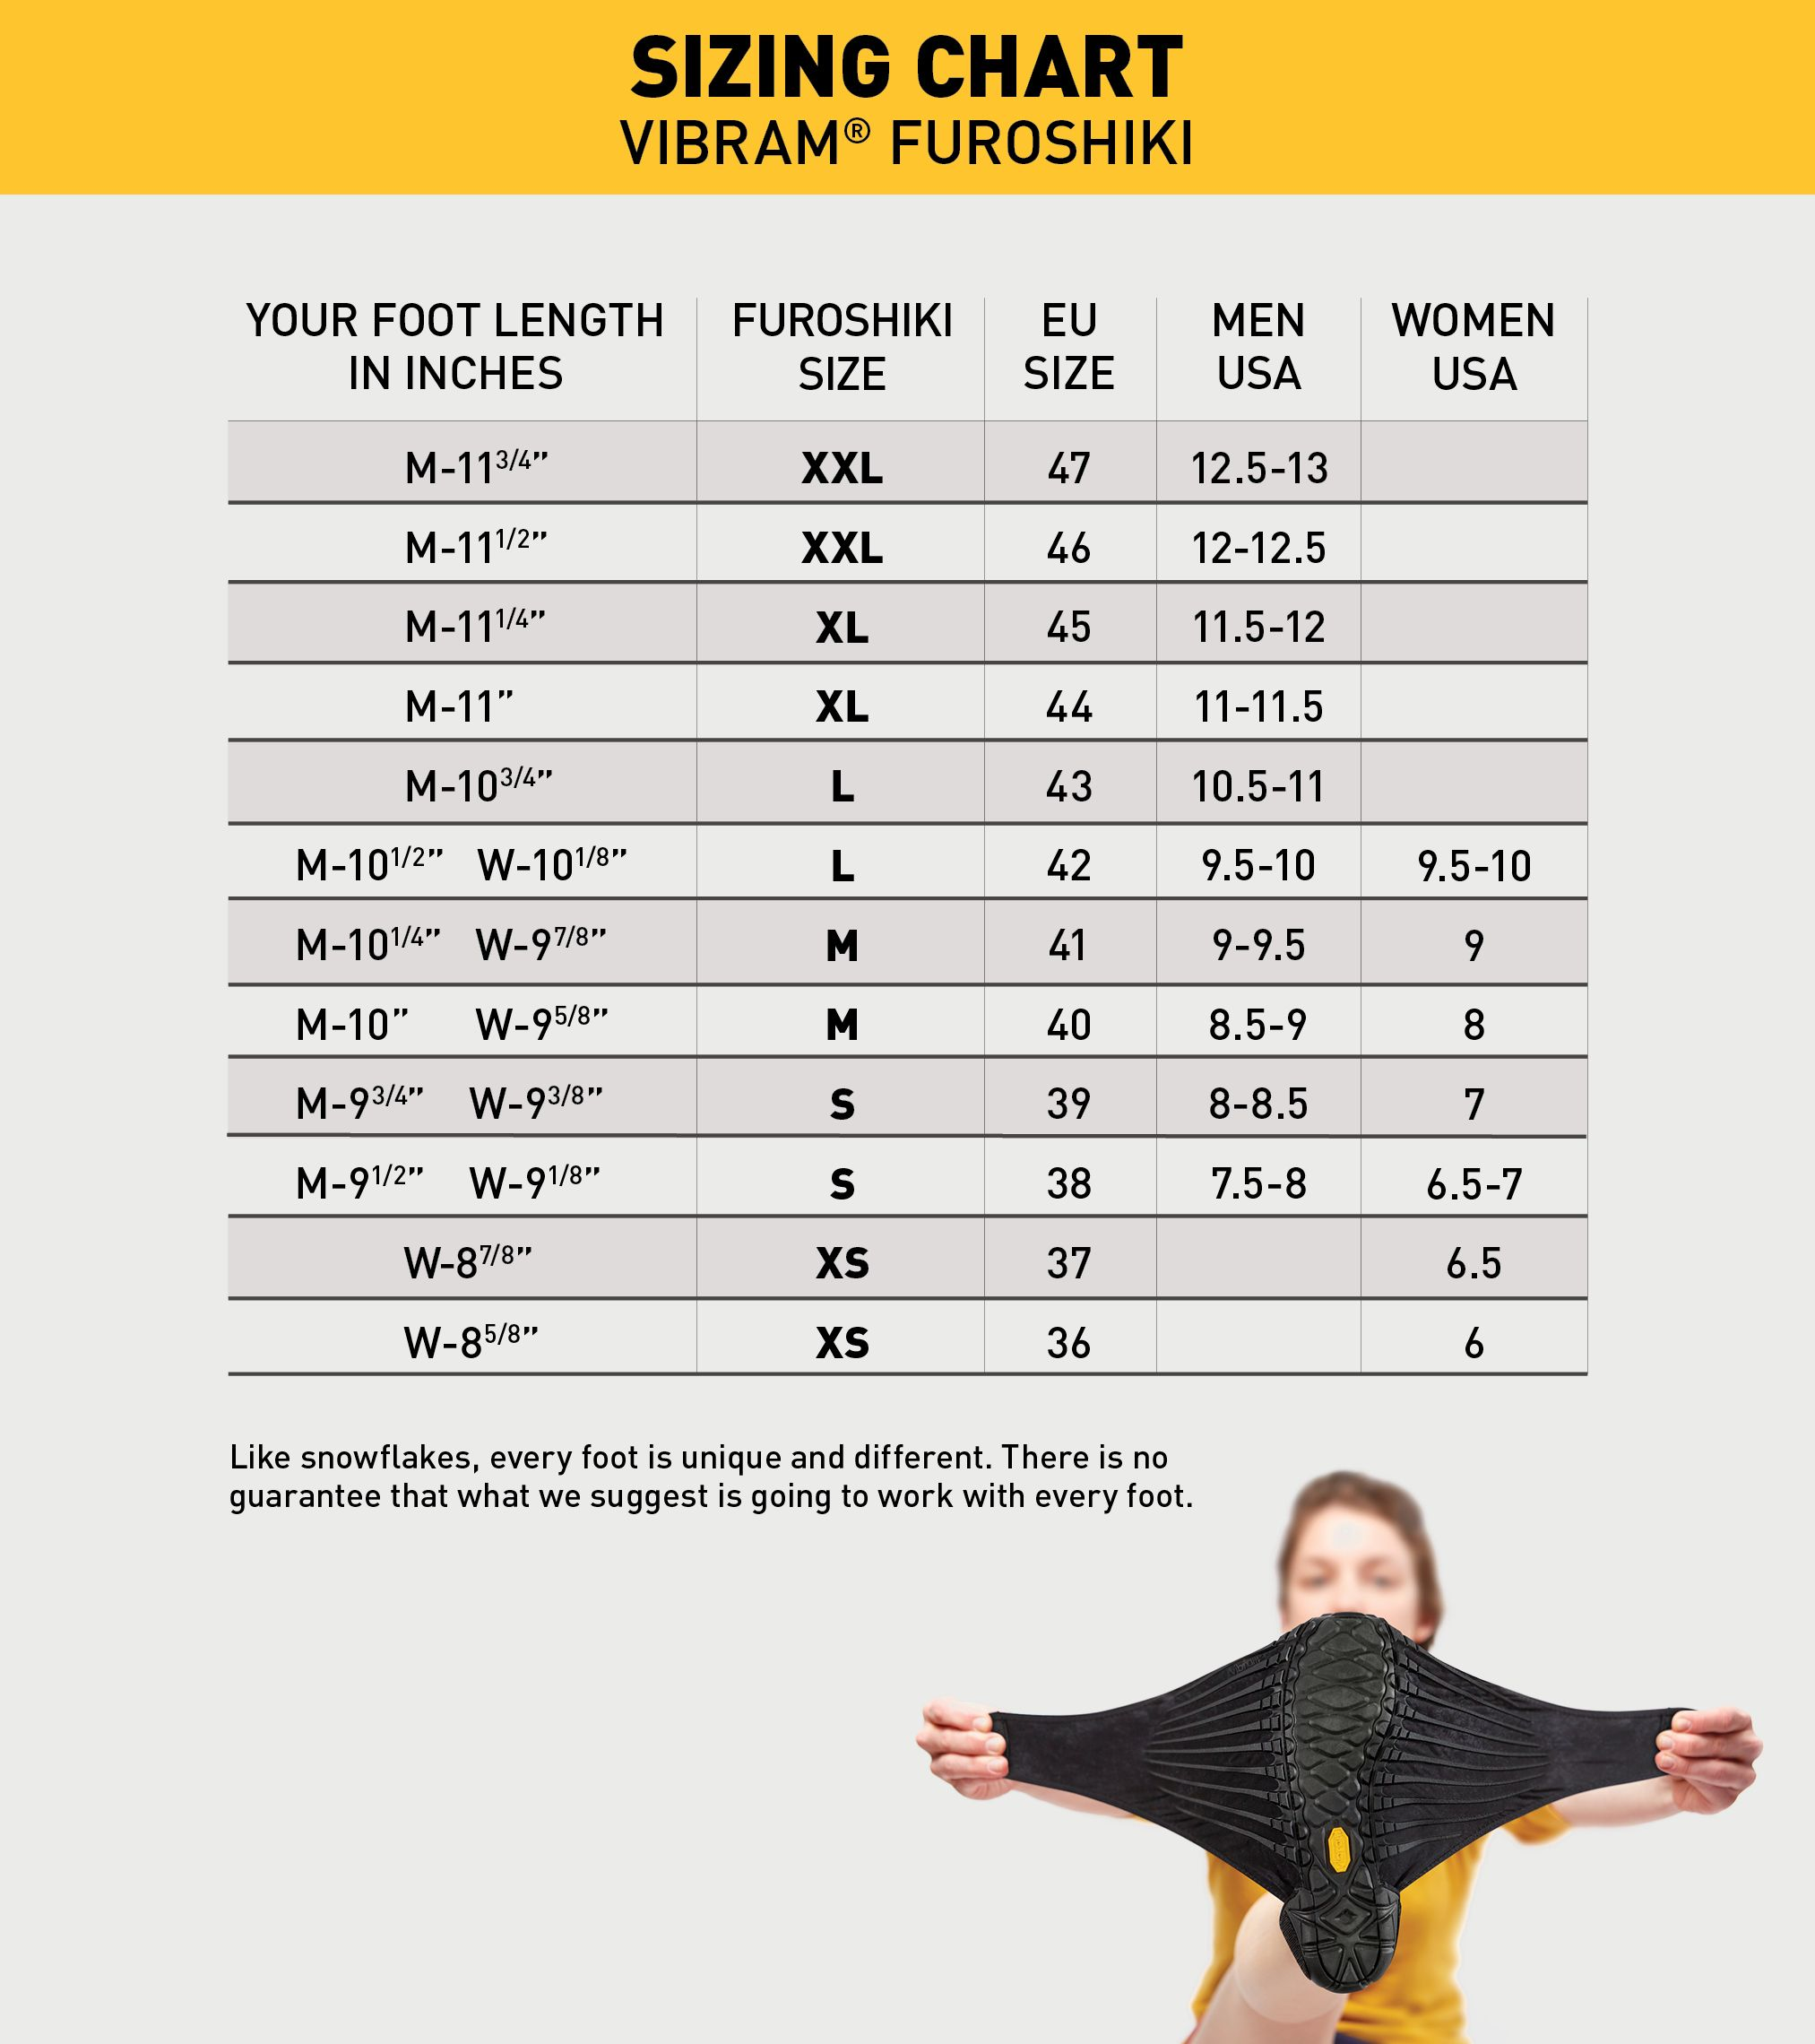 Vibram furoshiki the wrapping sole for everywhere you go and everything do new also best spring summer images on pinterest fivefingers rh